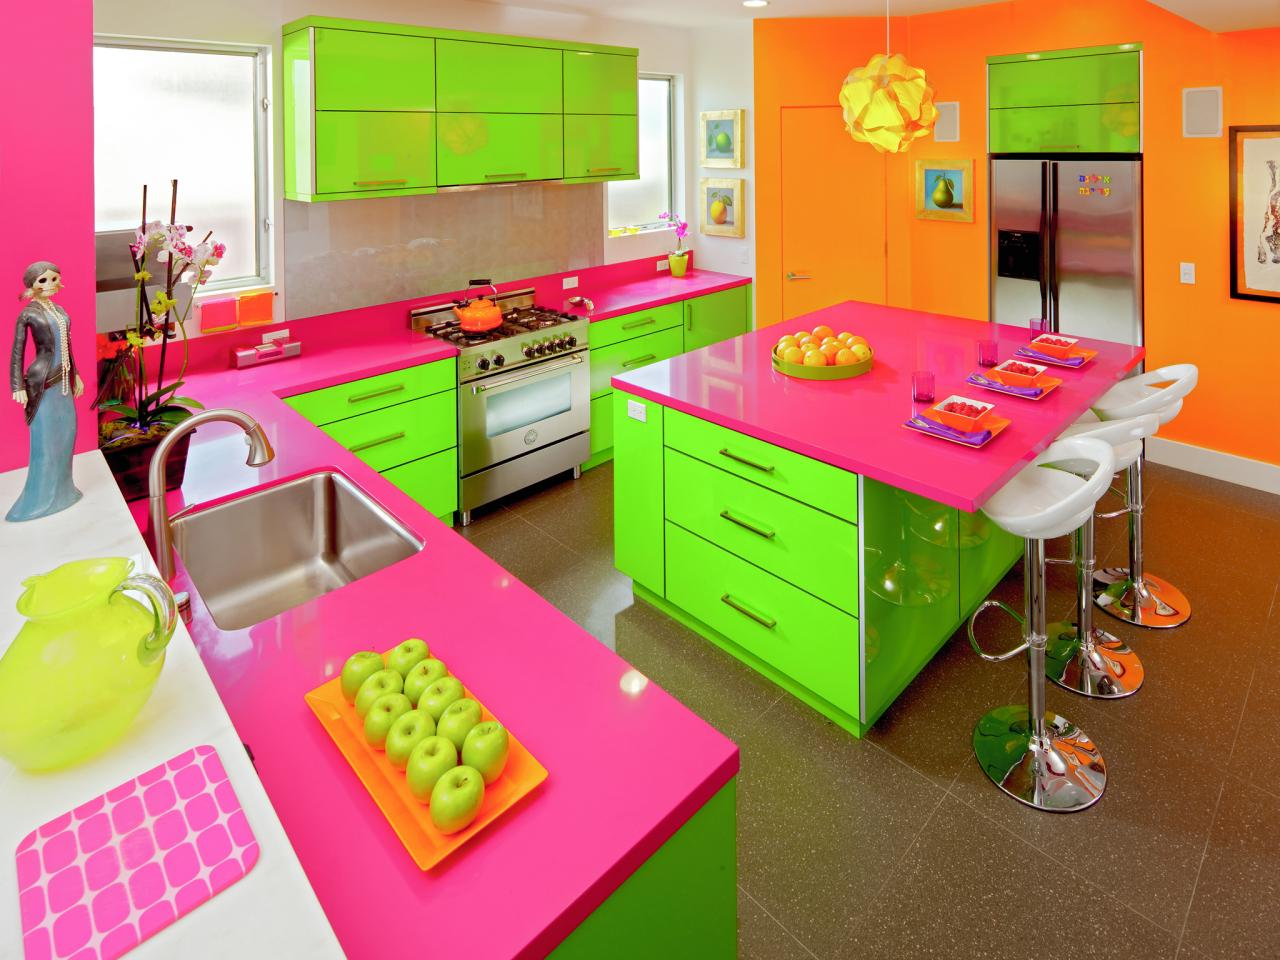 Neon Green Kitchen Backsplash